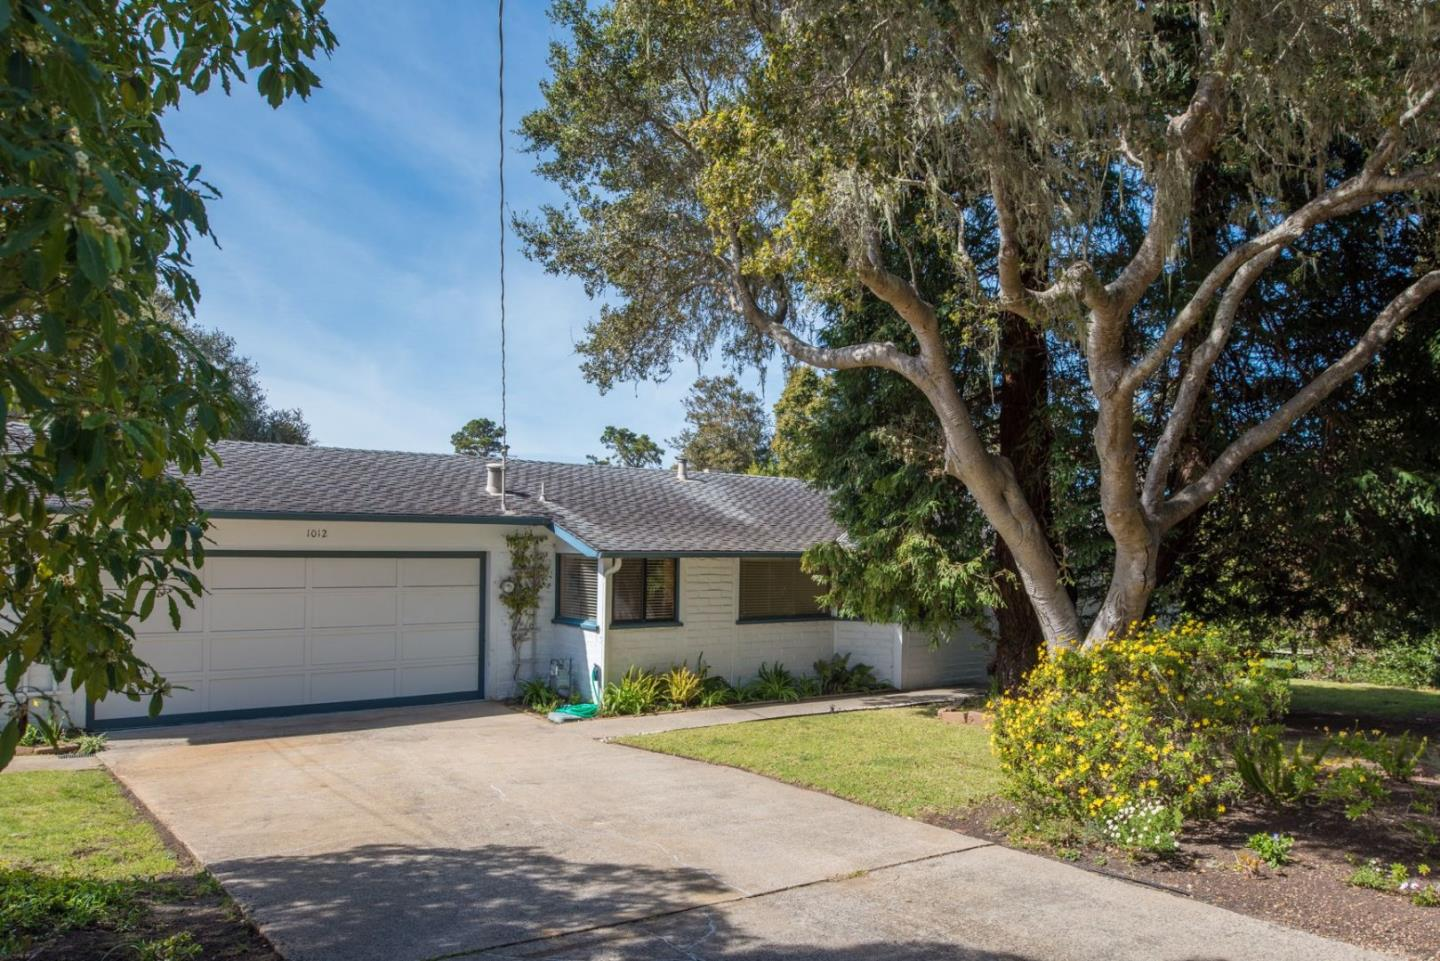 1012 San Carlos RD, Pebble Beach in Monterey County, CA 93953 Home for Sale